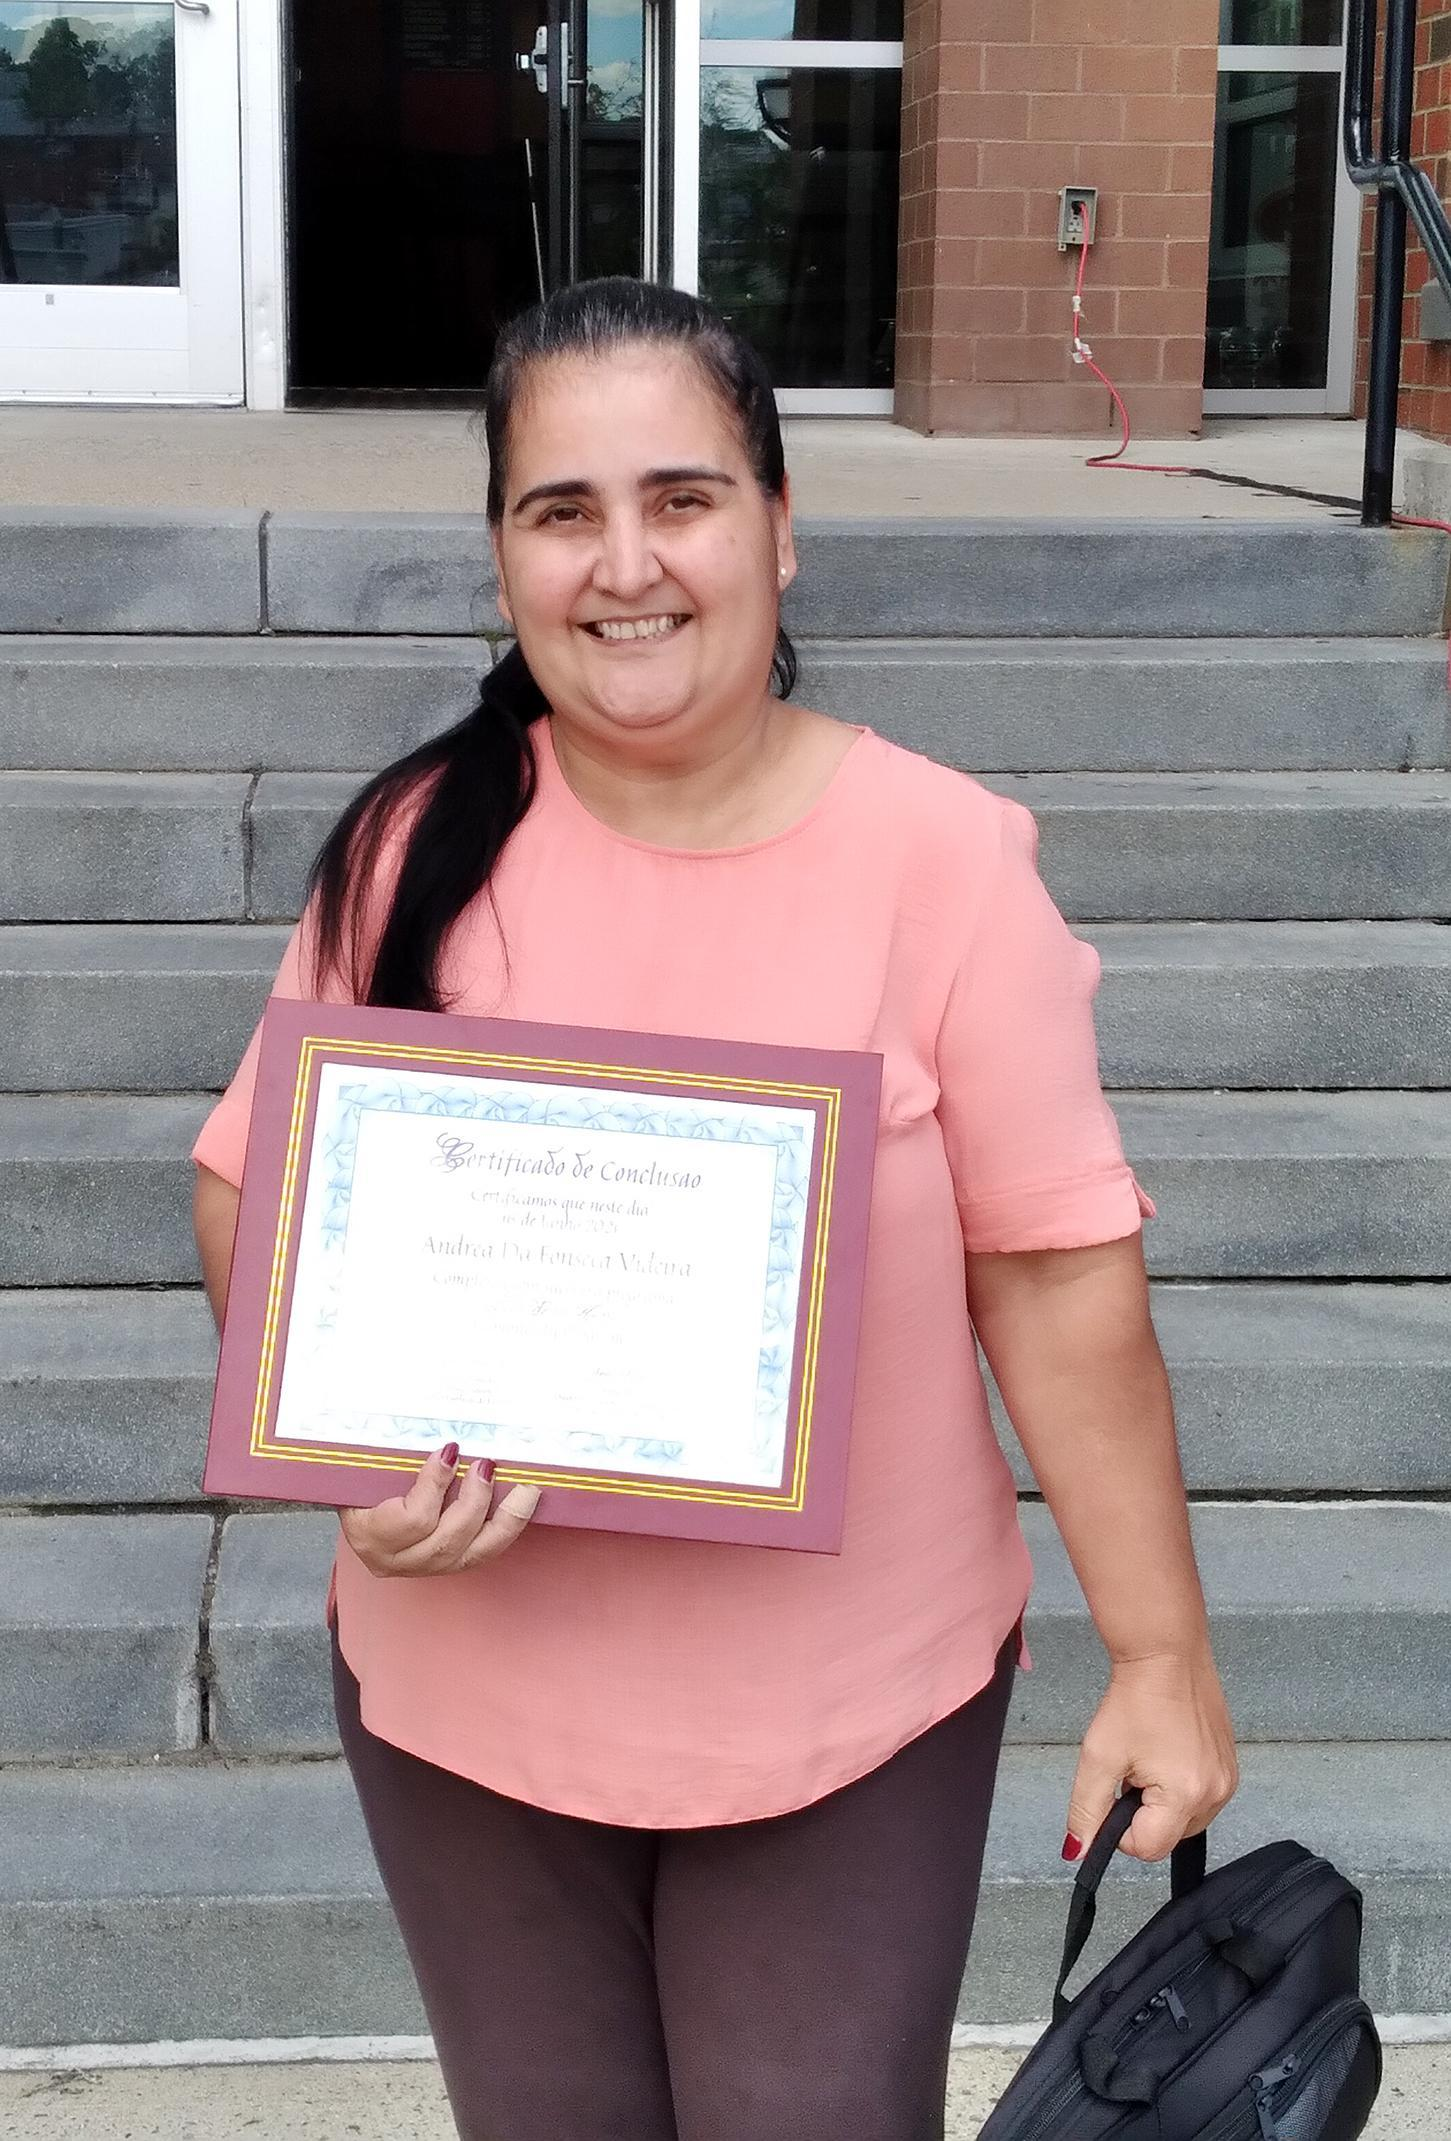 Parent holding a certificate and a case containing a Chromebook